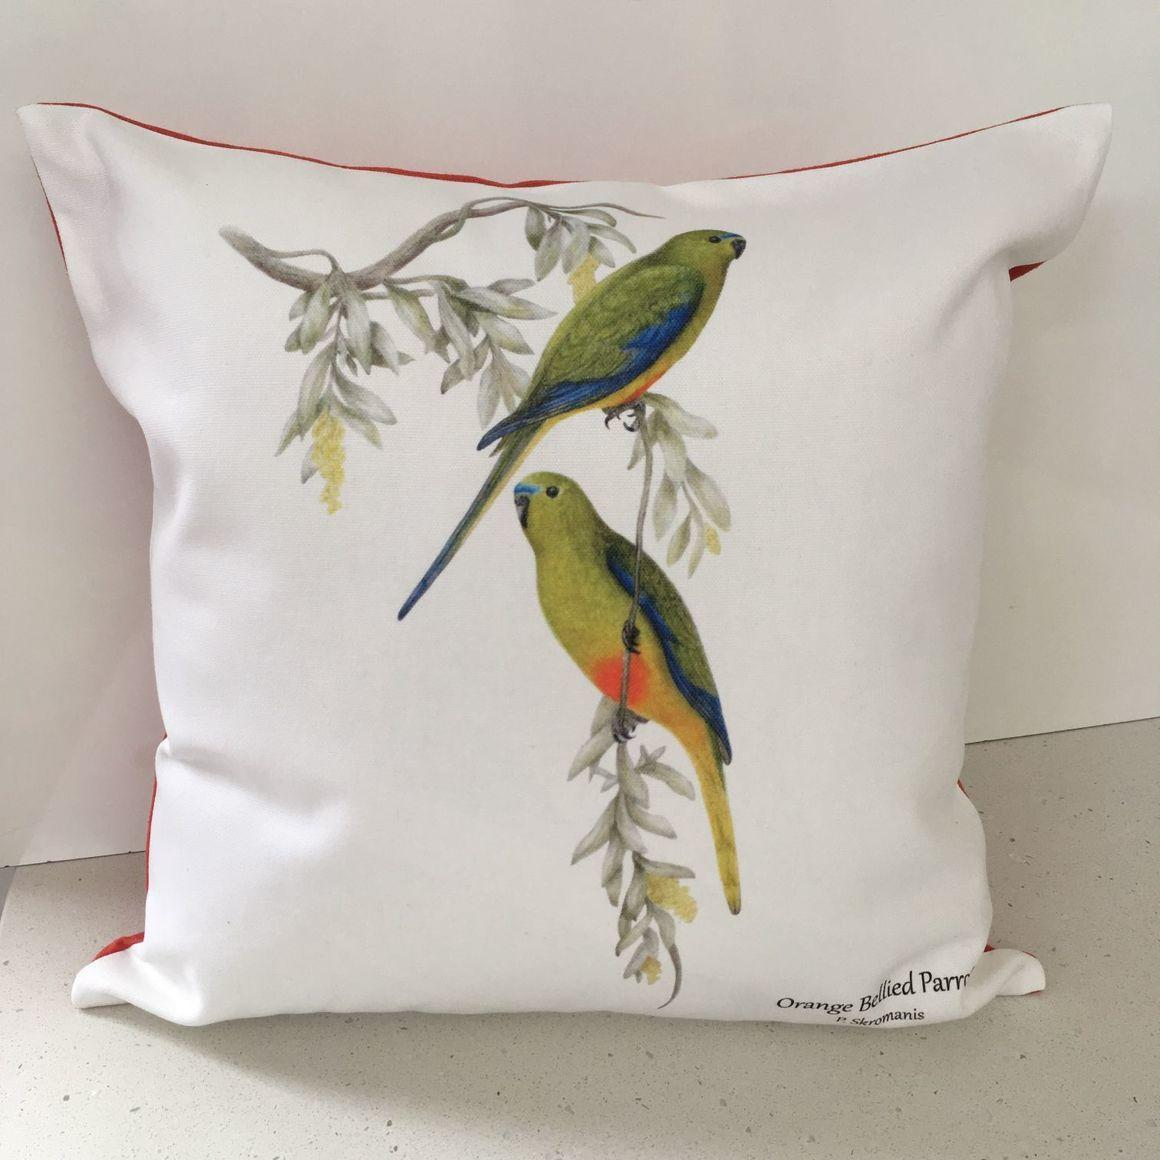 Cushion Covers - Orange Bellied Parrot   Trada Marketplace